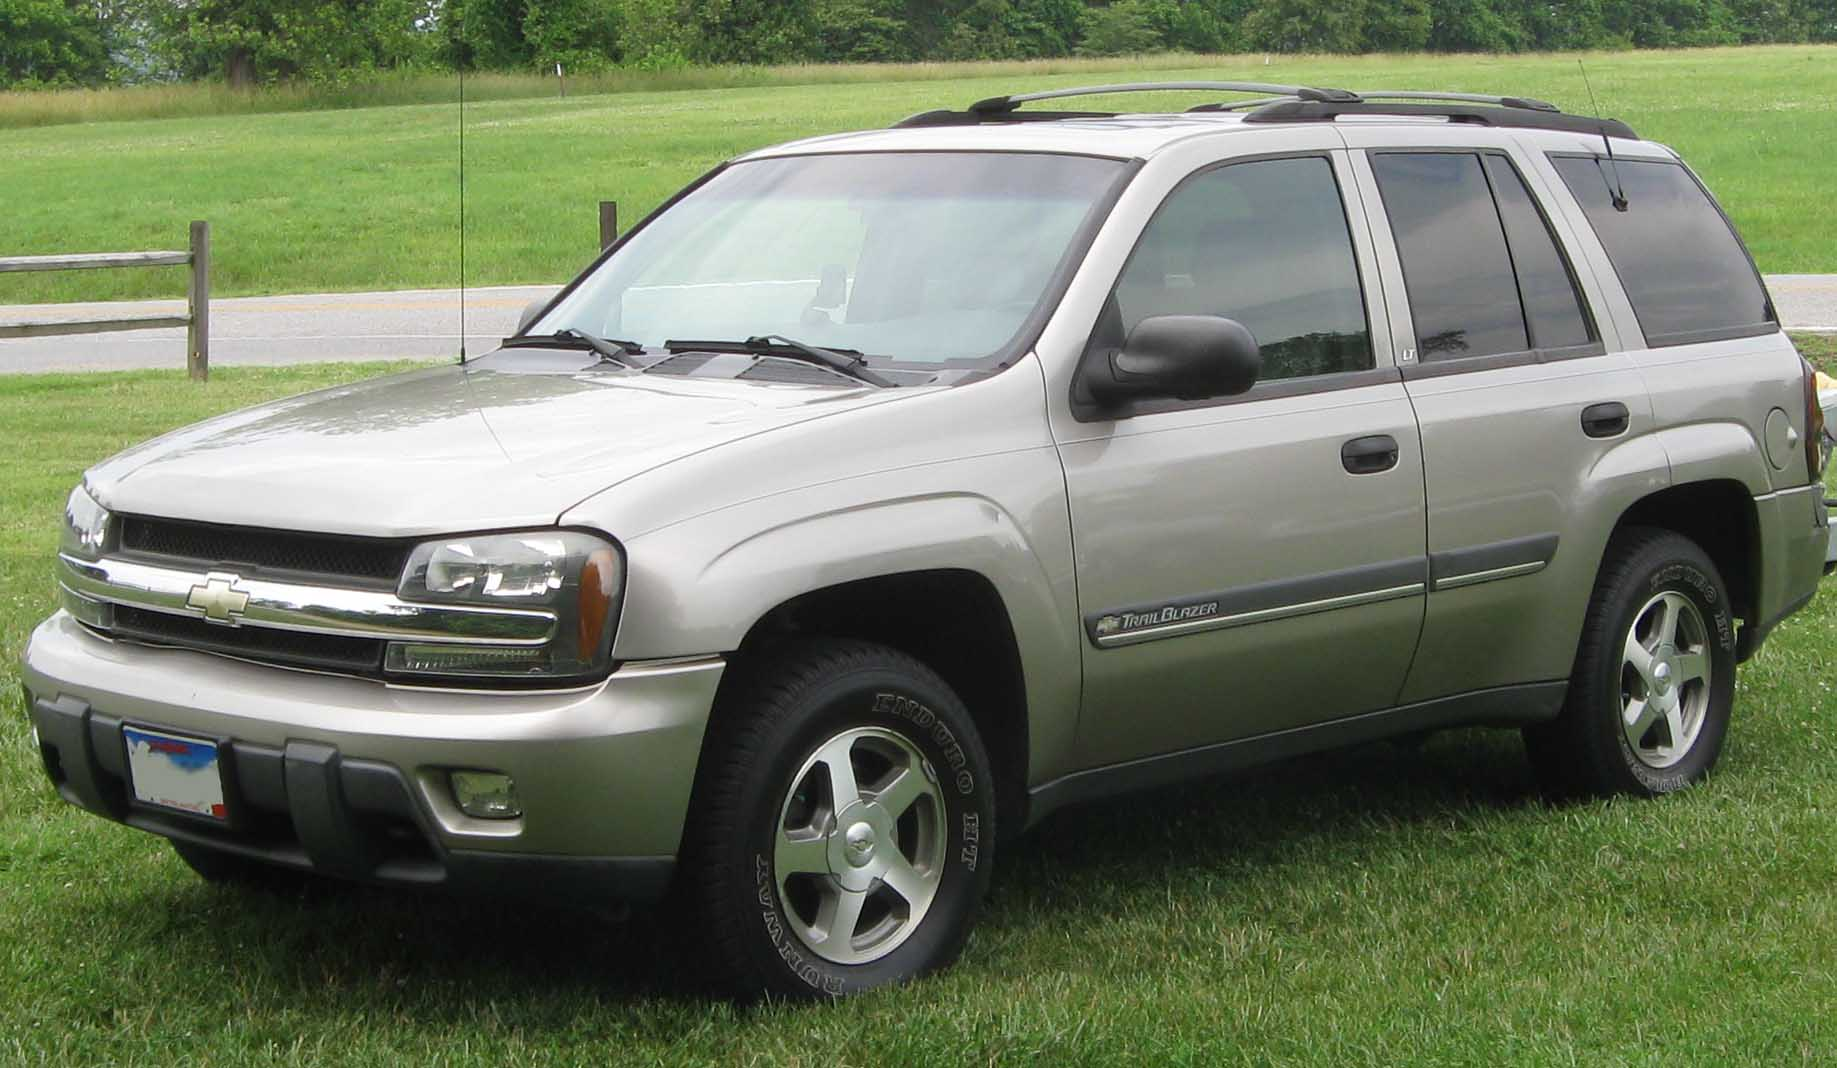 Chevrolet Trailblazer Wikipedia 2007 Chevy Impala Headlight Wiring Diagram